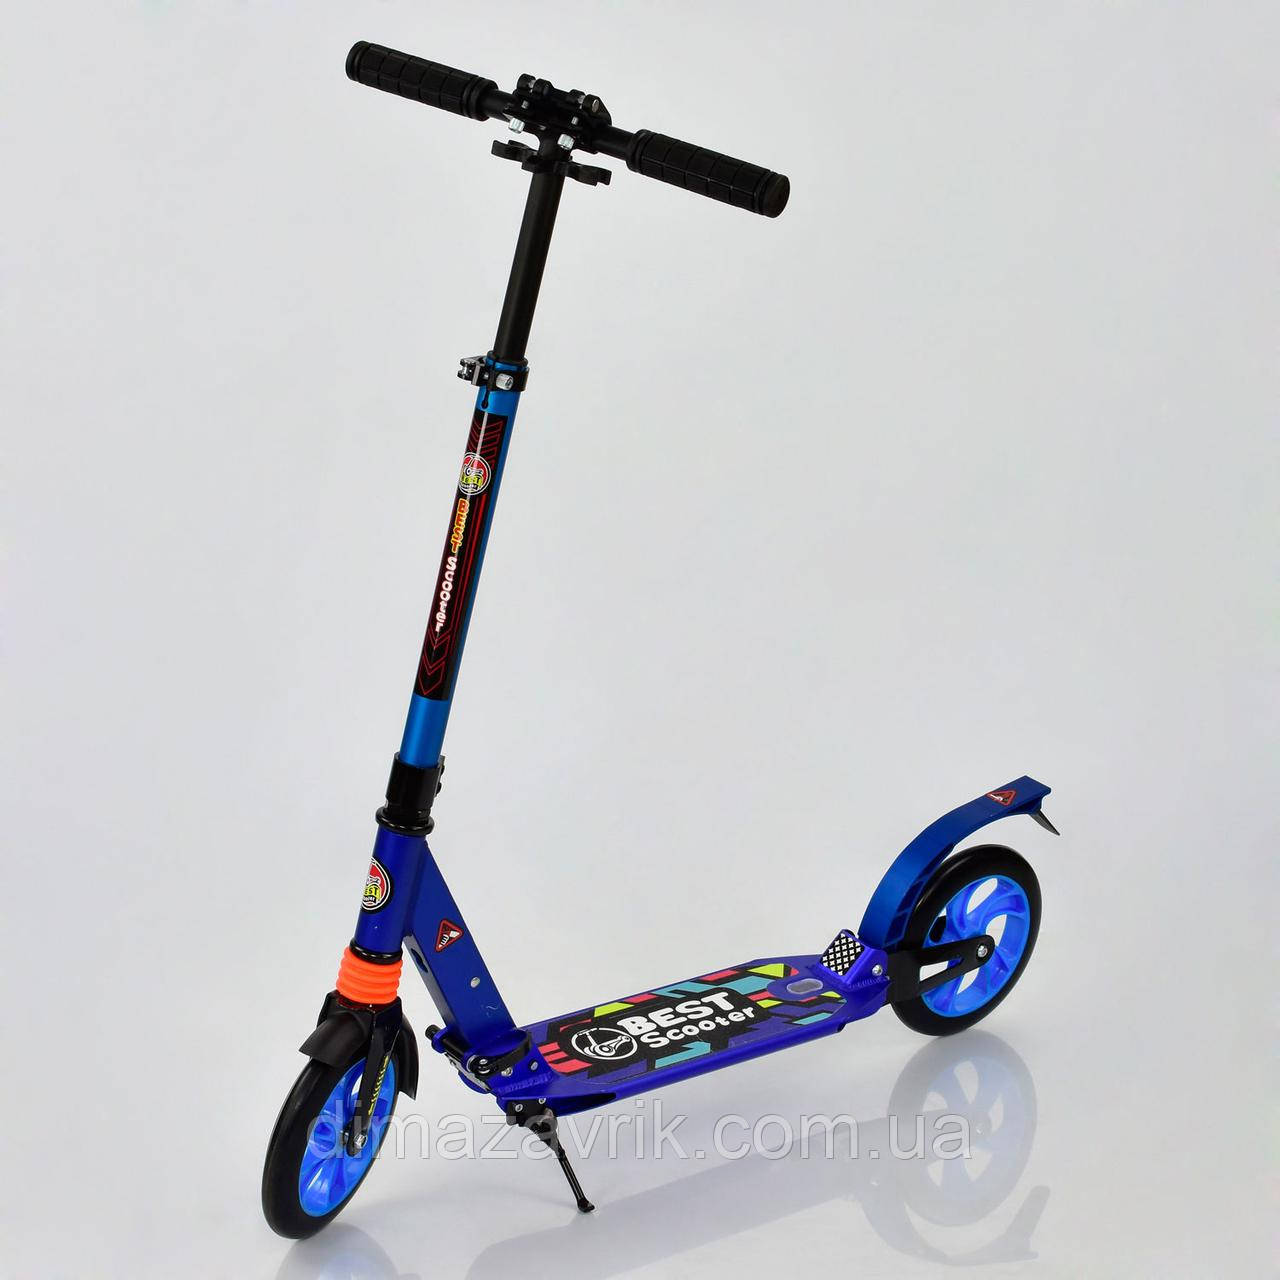 Самокат Best Scooter 692 Синий